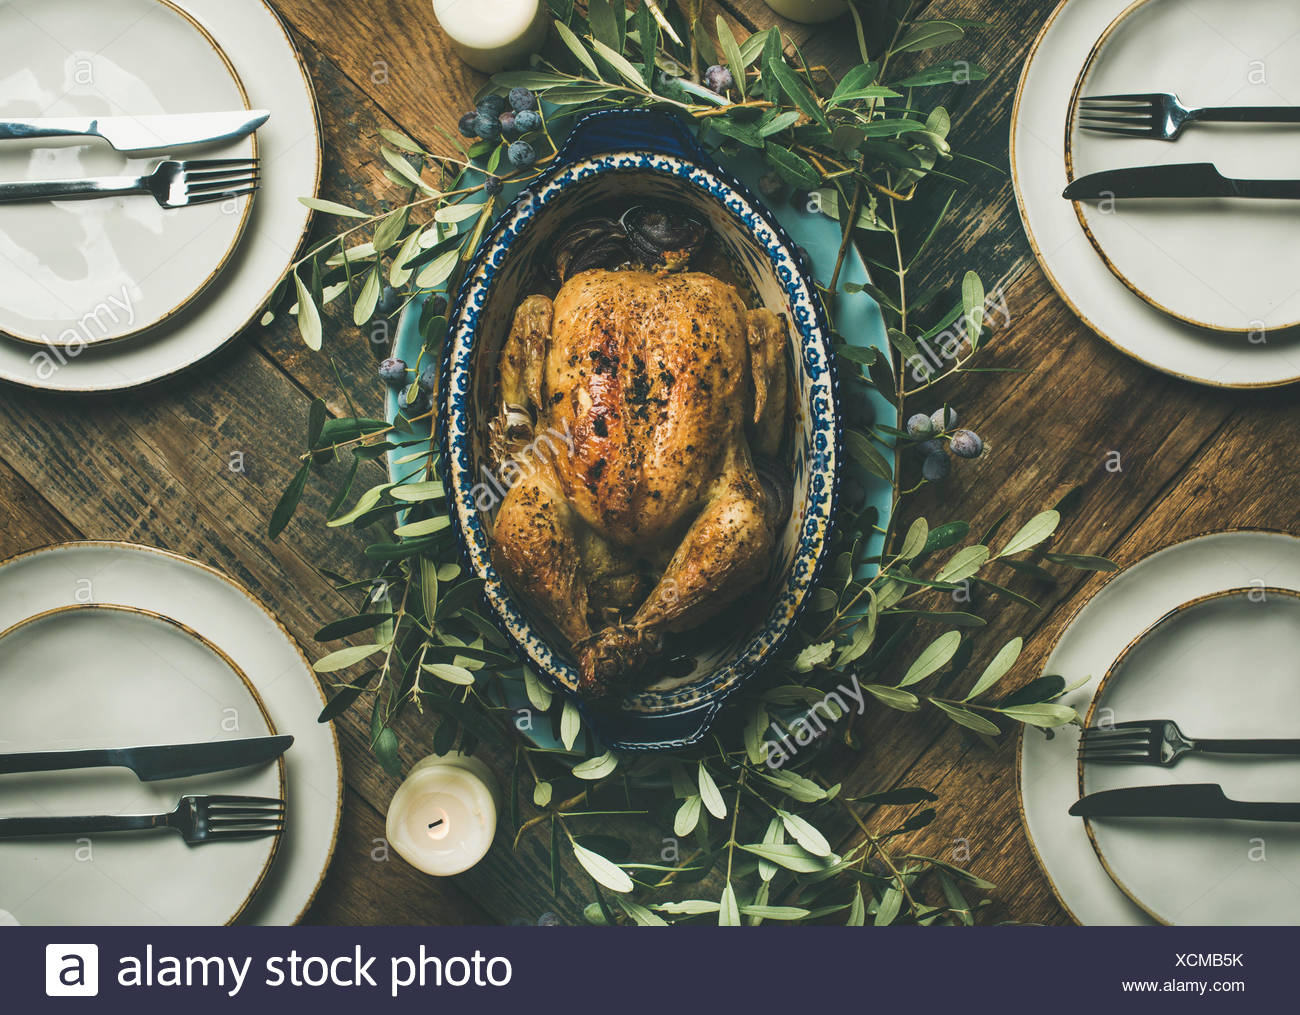 Flat-lay of whole roasted chicken in tray for Christmas eve celebration, plates and candles over rustic wooden background, top view. Holiday table dec - Stock Image